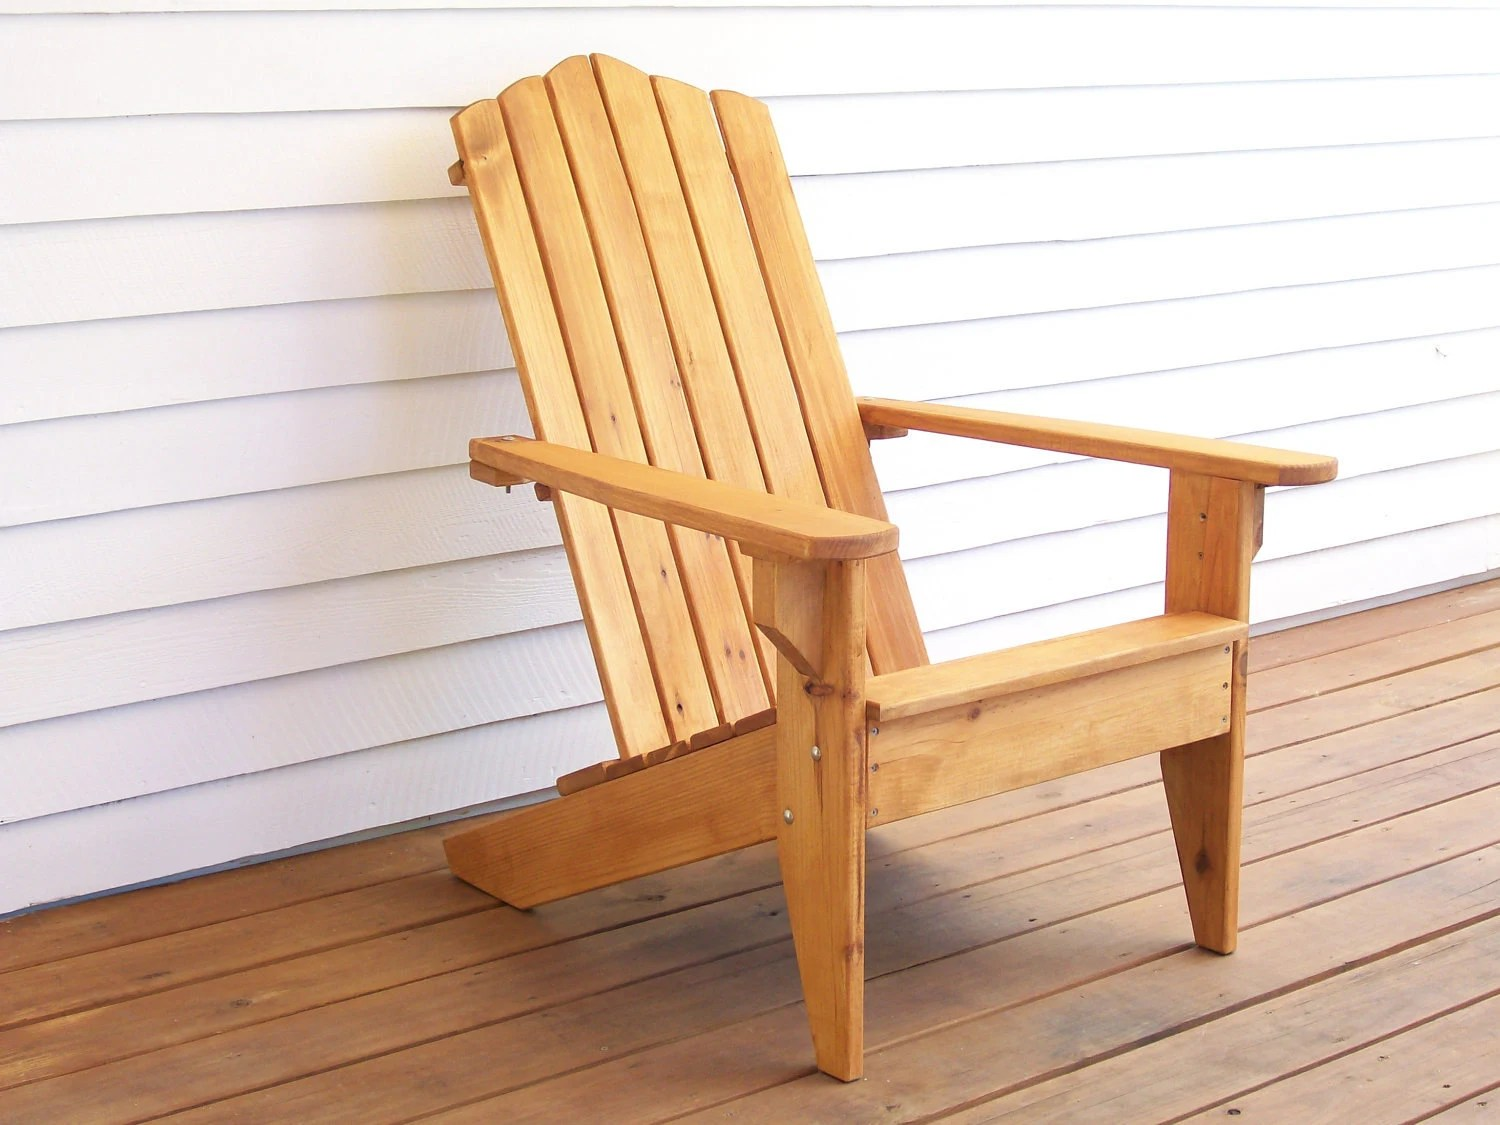 Wooden Chairs Adirondack Wood Chair Adirondack Furniture Outdoor Wood